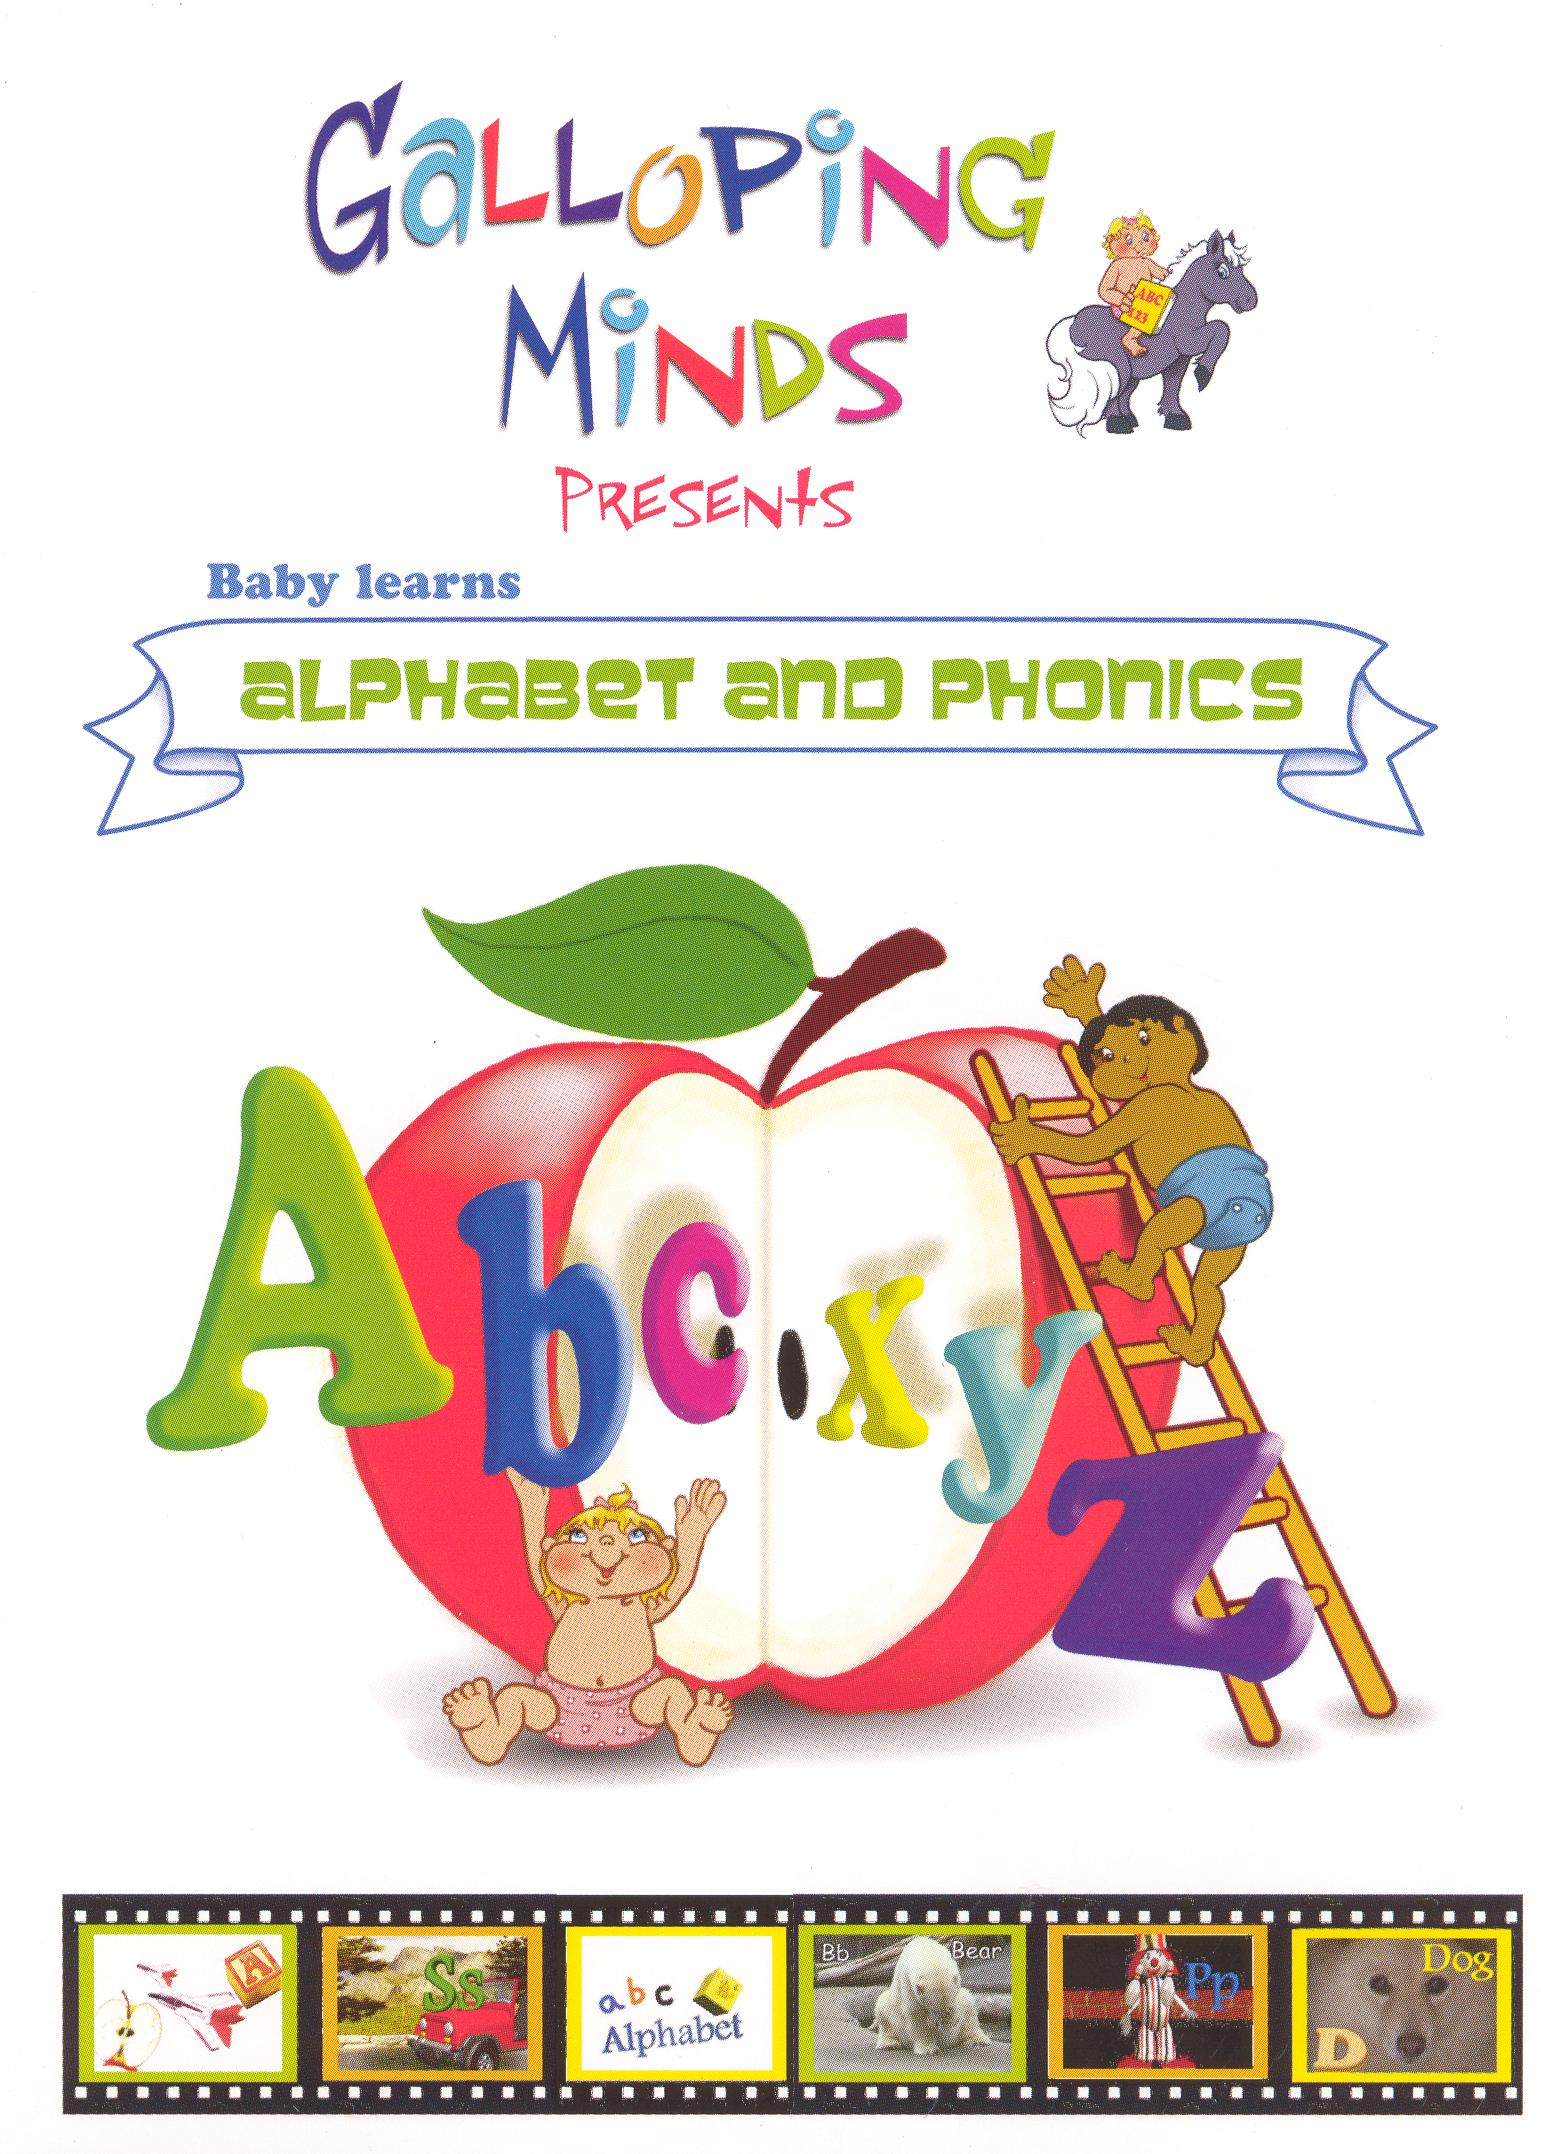 Galloping Minds: Baby Learns Alphabet and Phonics